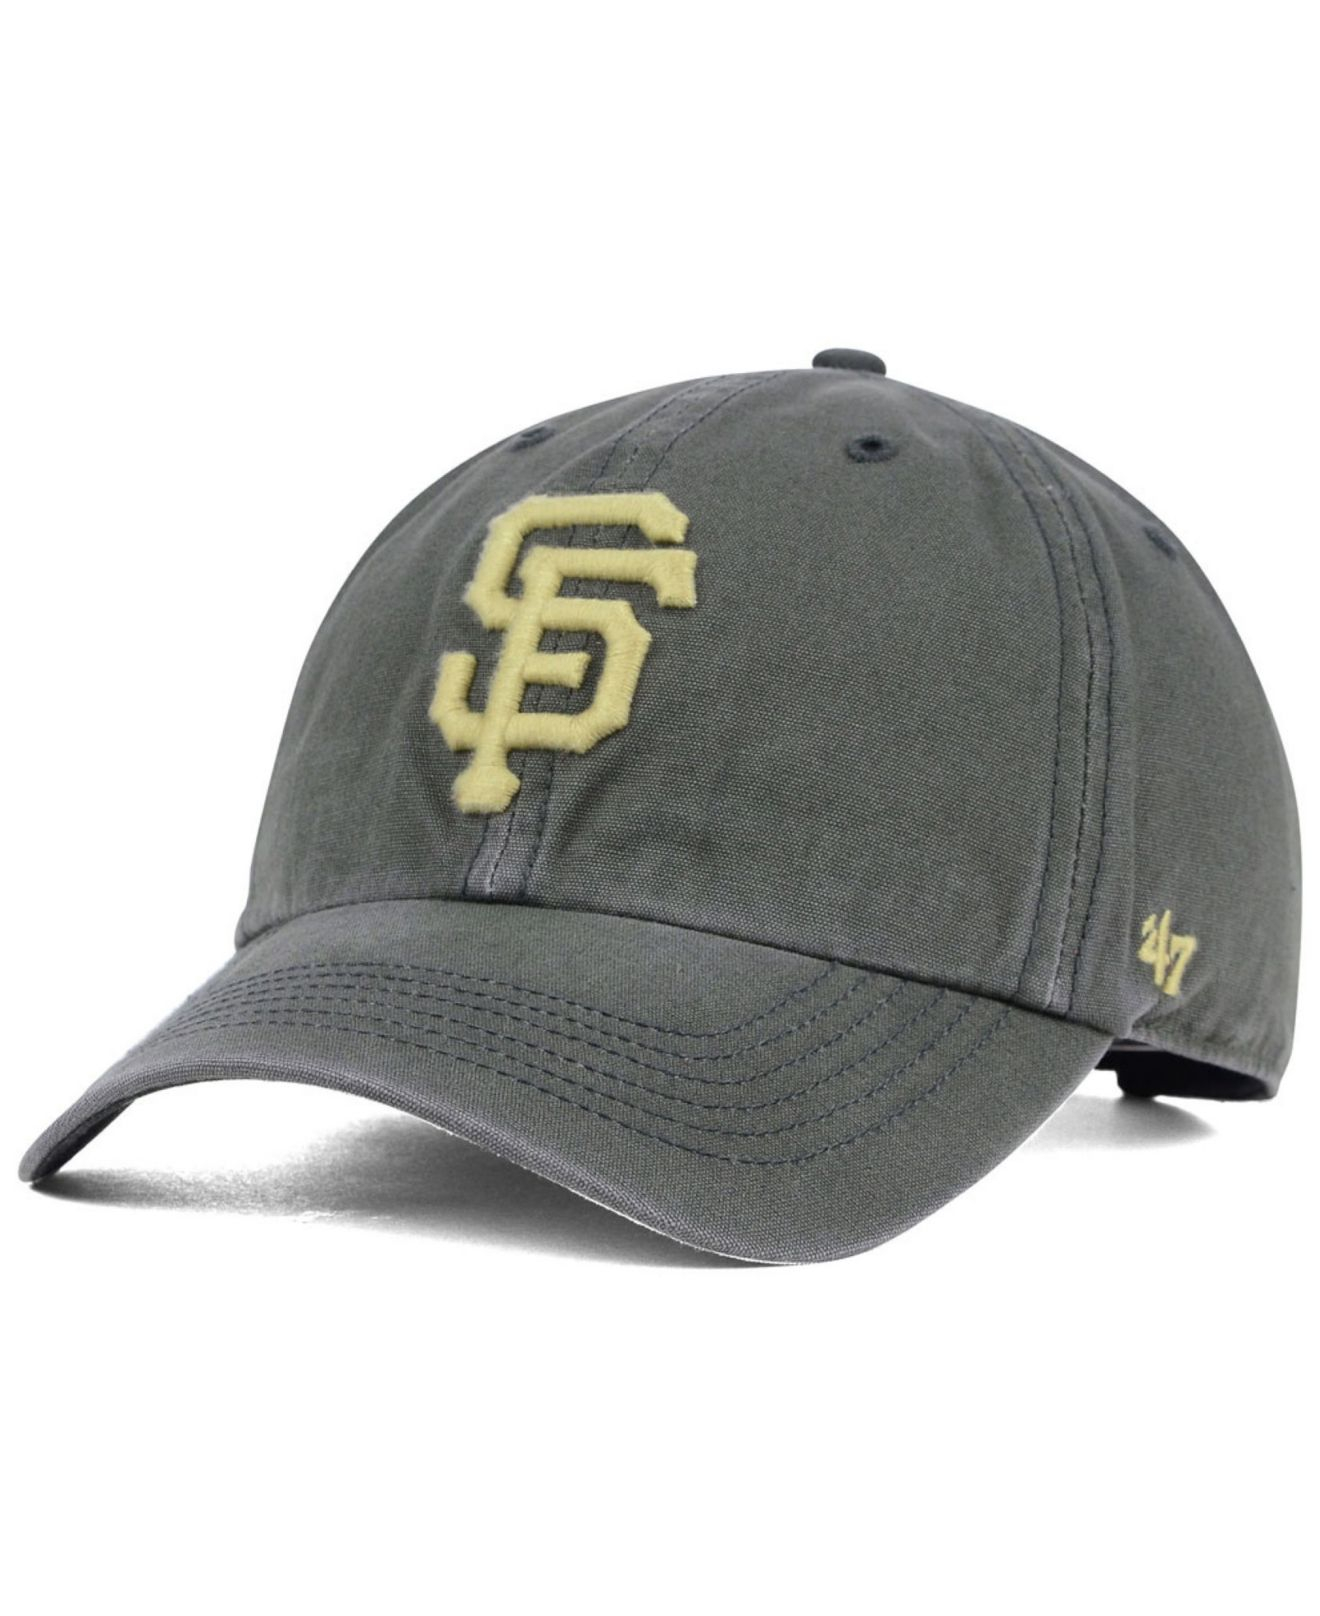 huge discount a6fff 5579f ... australia lyst 47 brand san francisco giants stillwater clean up cap in  gray 218c7 3e53f